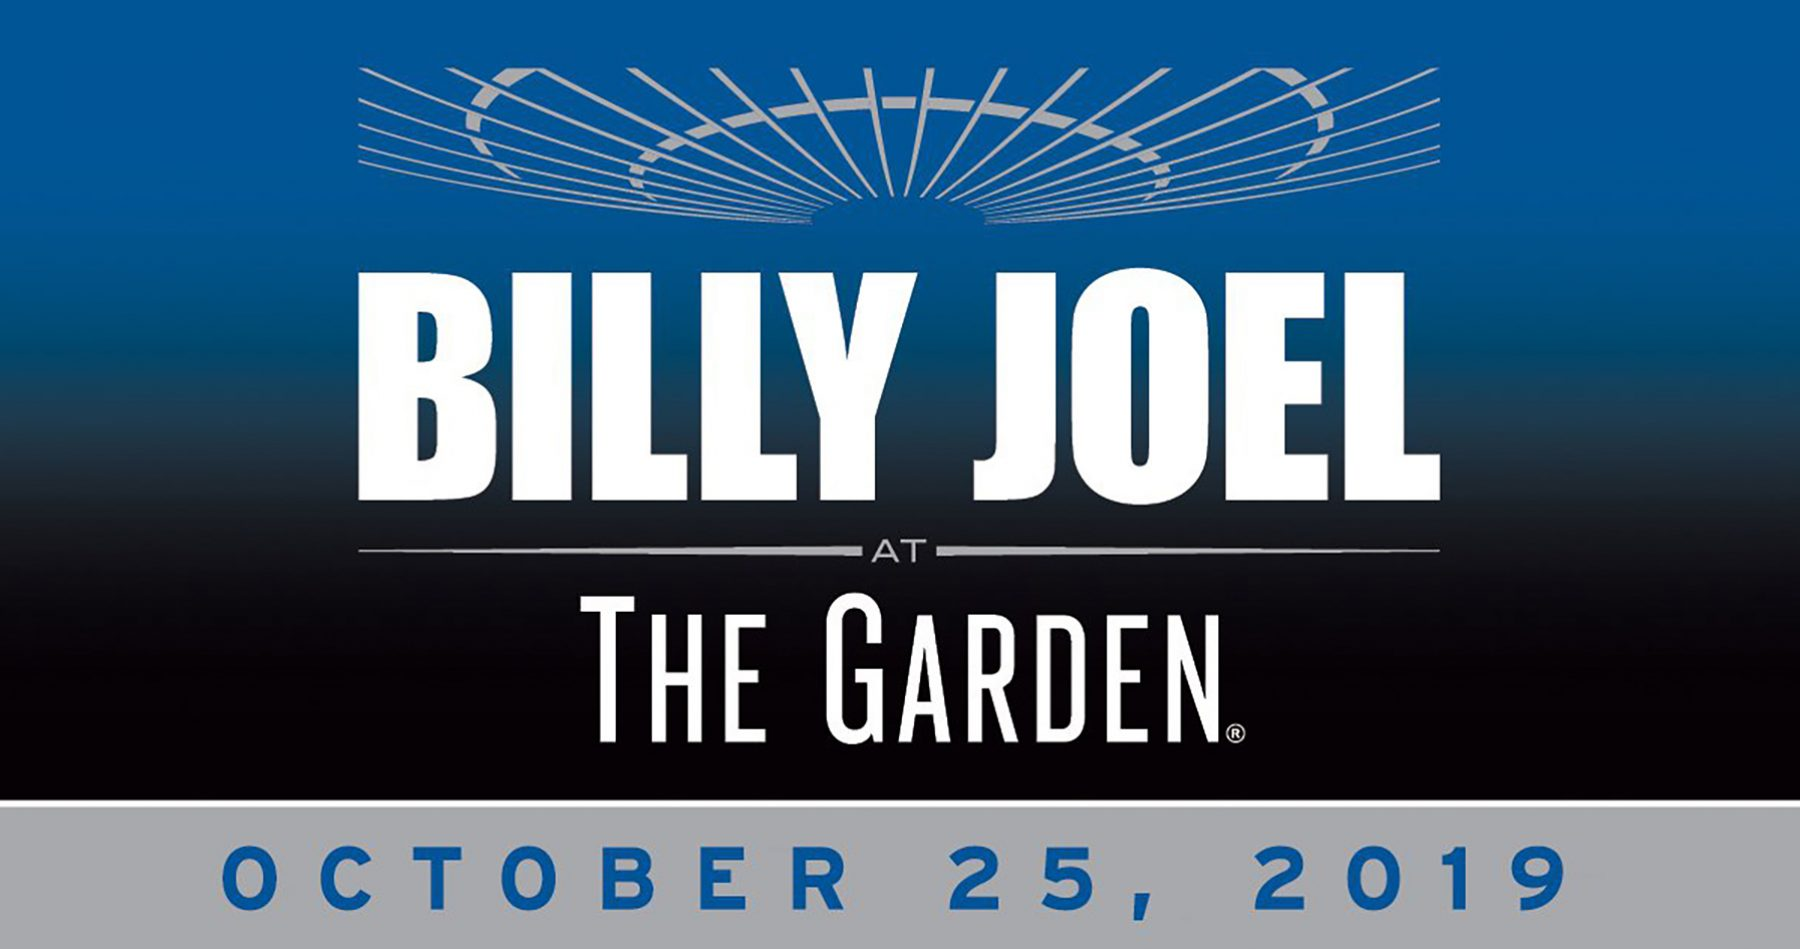 Billy Joel to play Madison Square Garden October 25, 2019